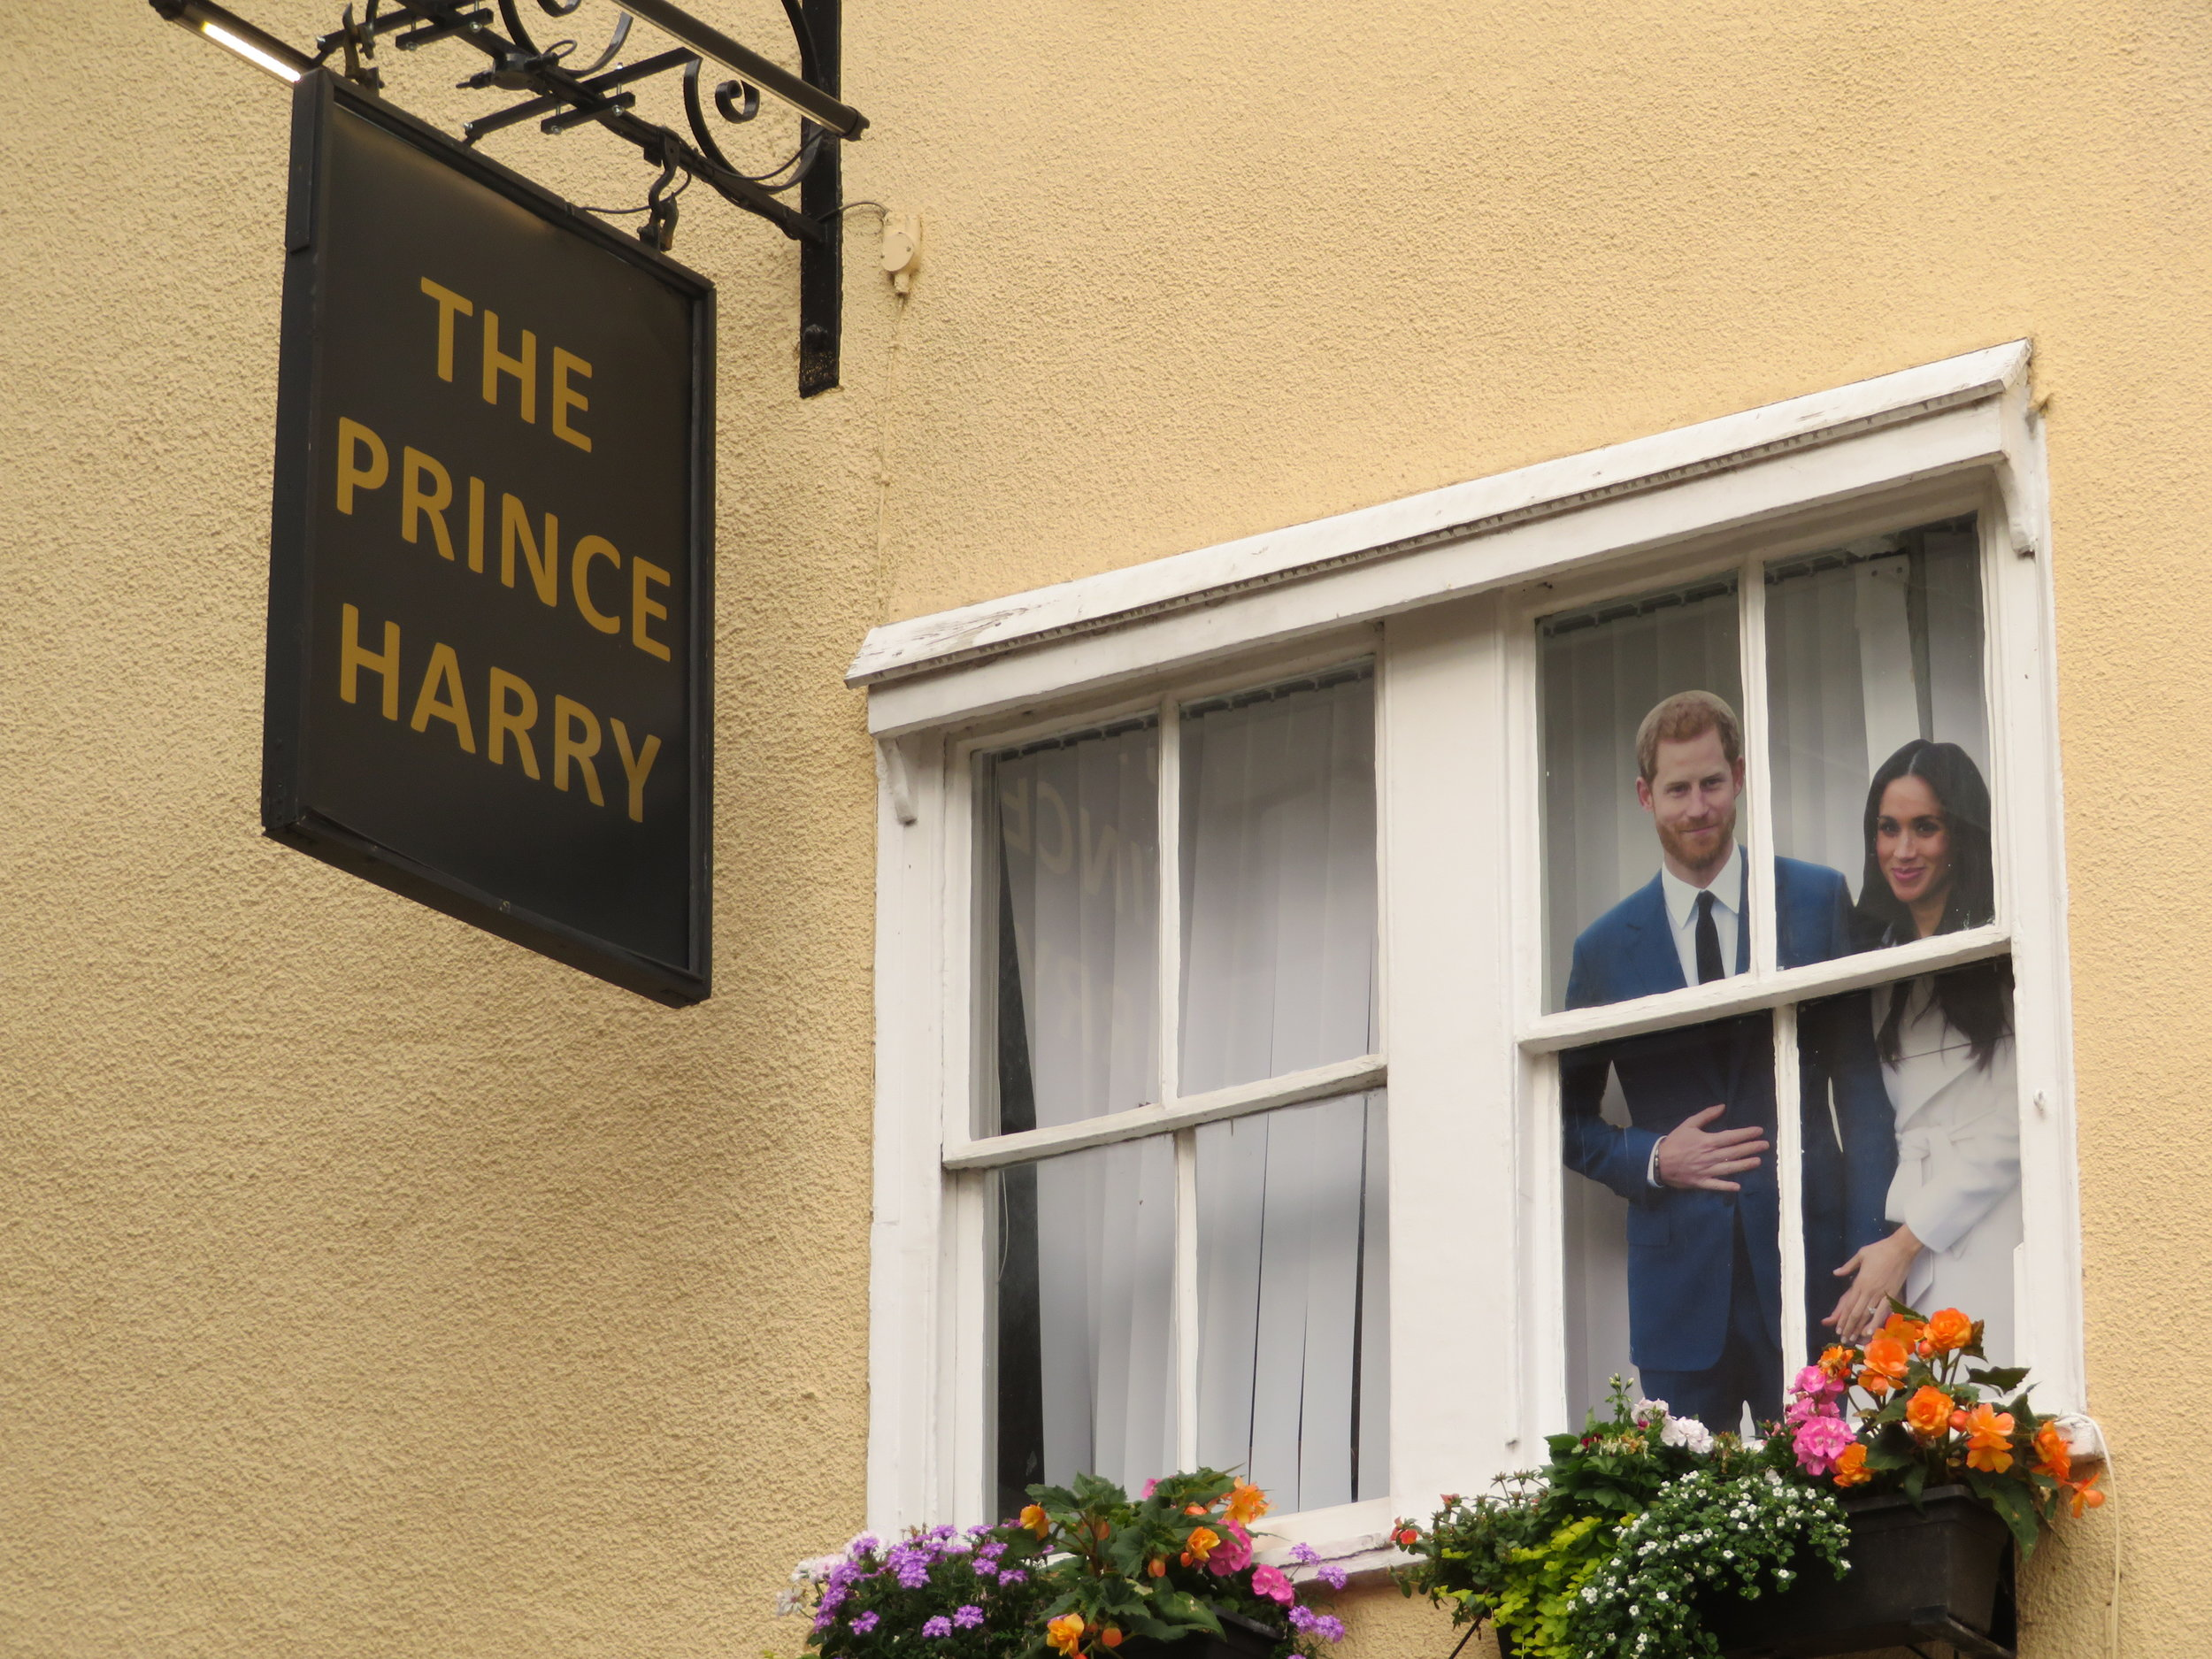 windsor_prince harry pub pic.JPG